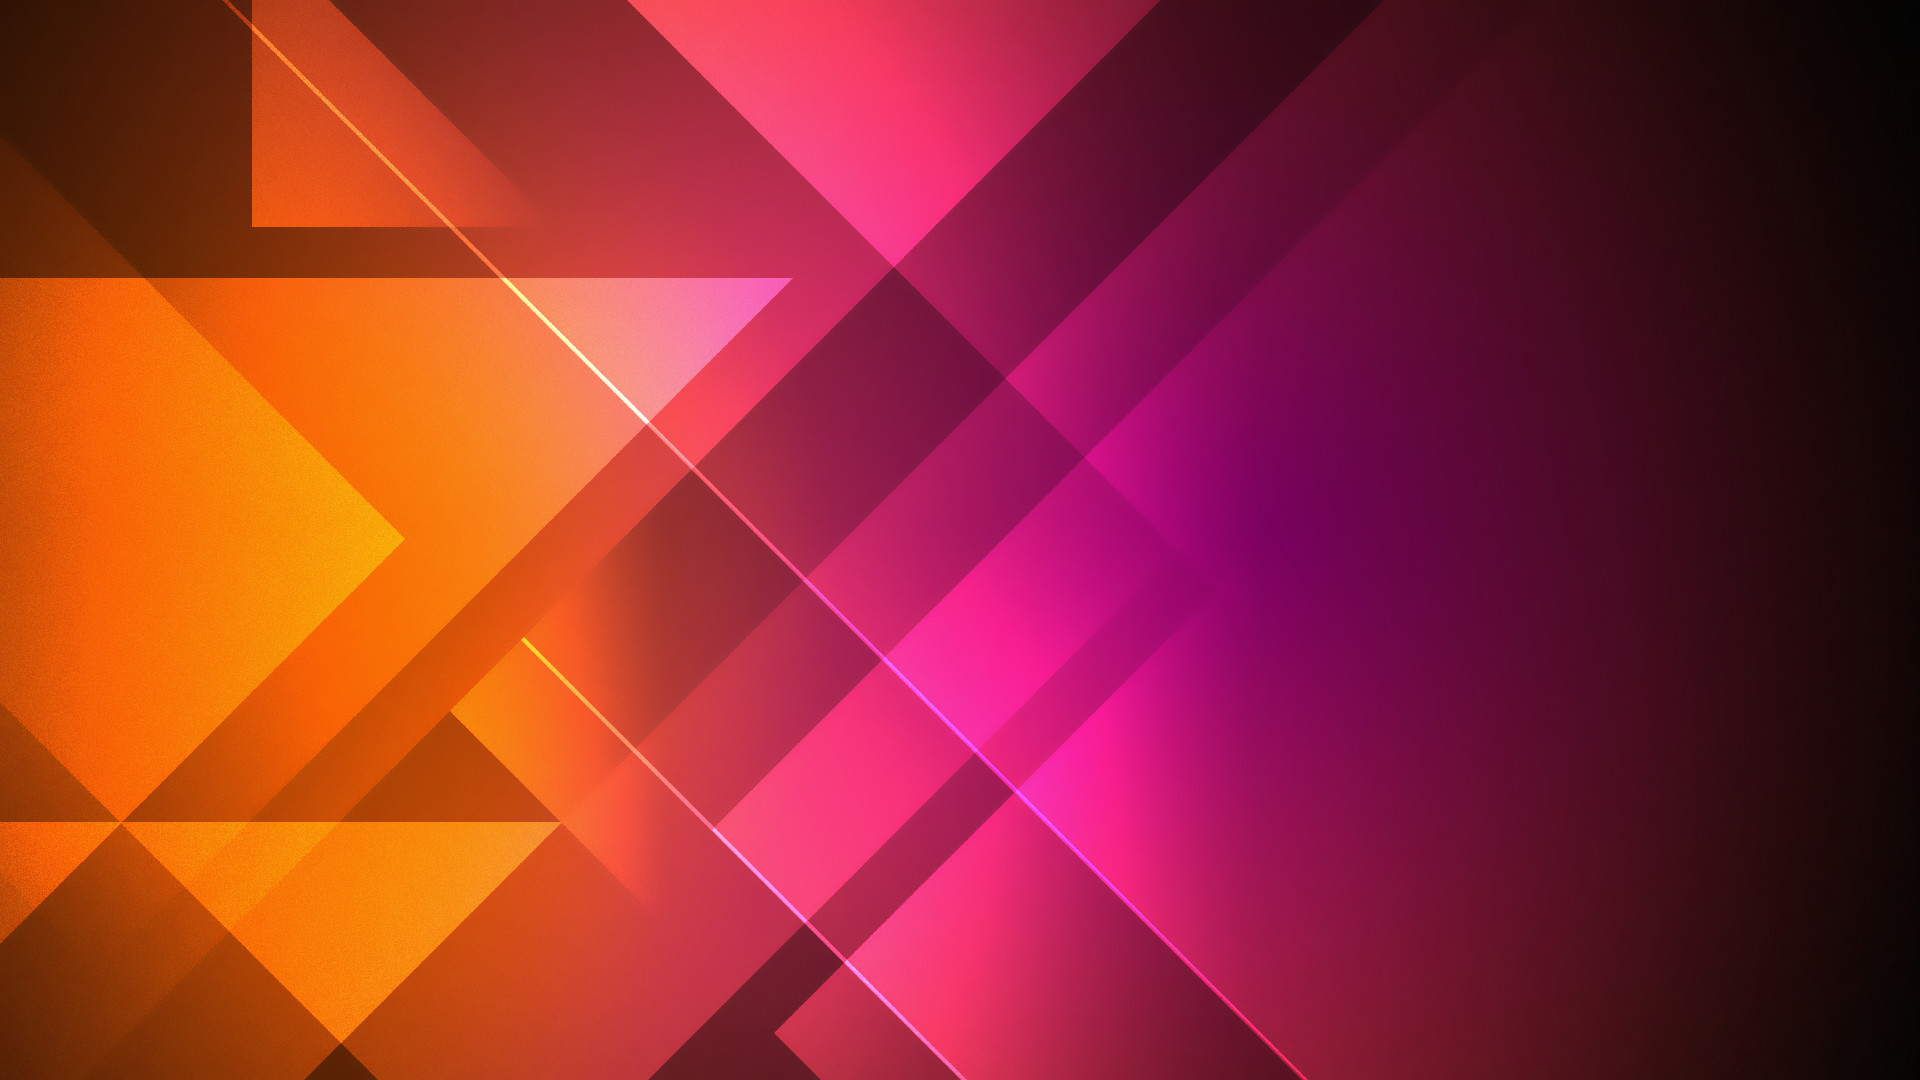 Abstract-Geometric wallpaper #13